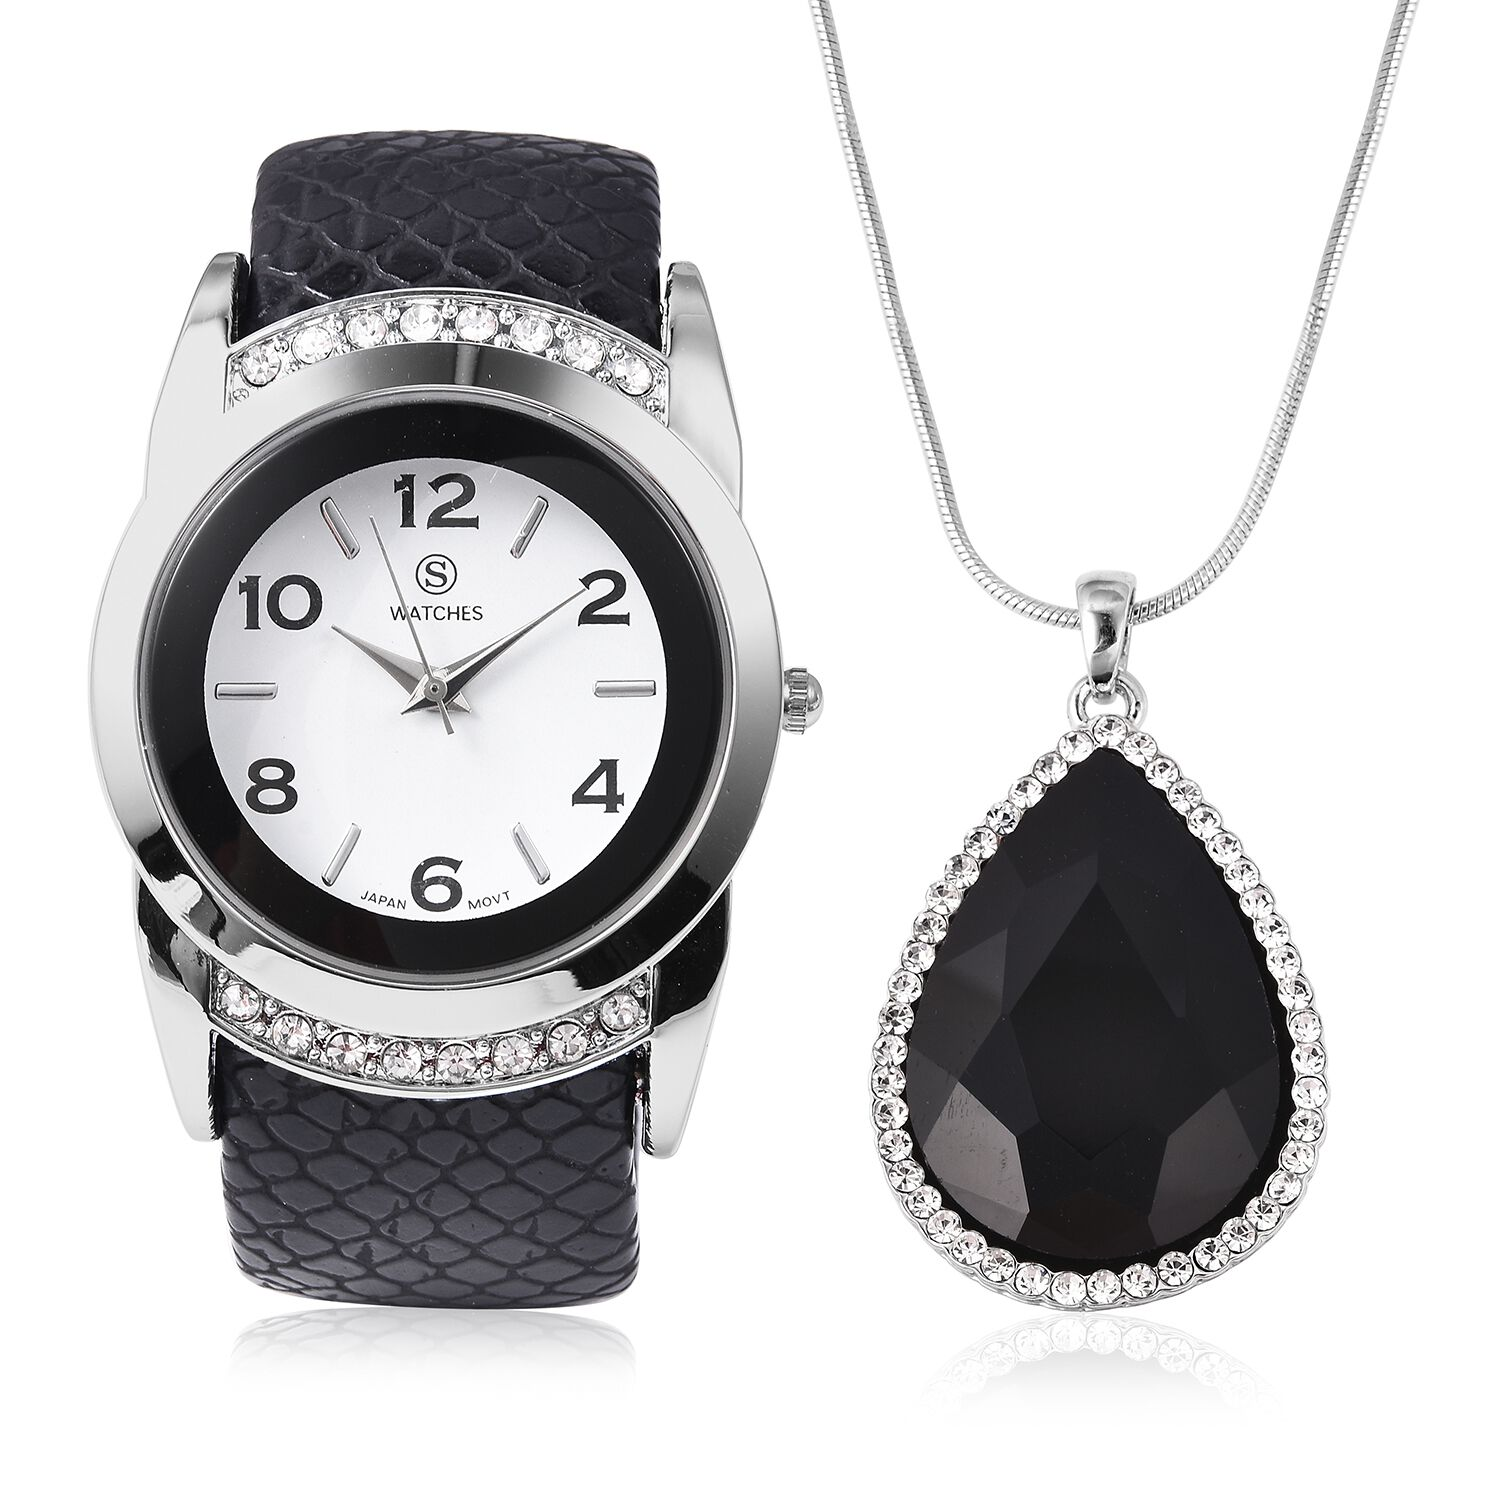 2 Piece Set STRADA Japanese Movement Water Resistant Bangle Watch with Simulated Black Spinel and White Austrian Crystal Pendant With Chain in Silver